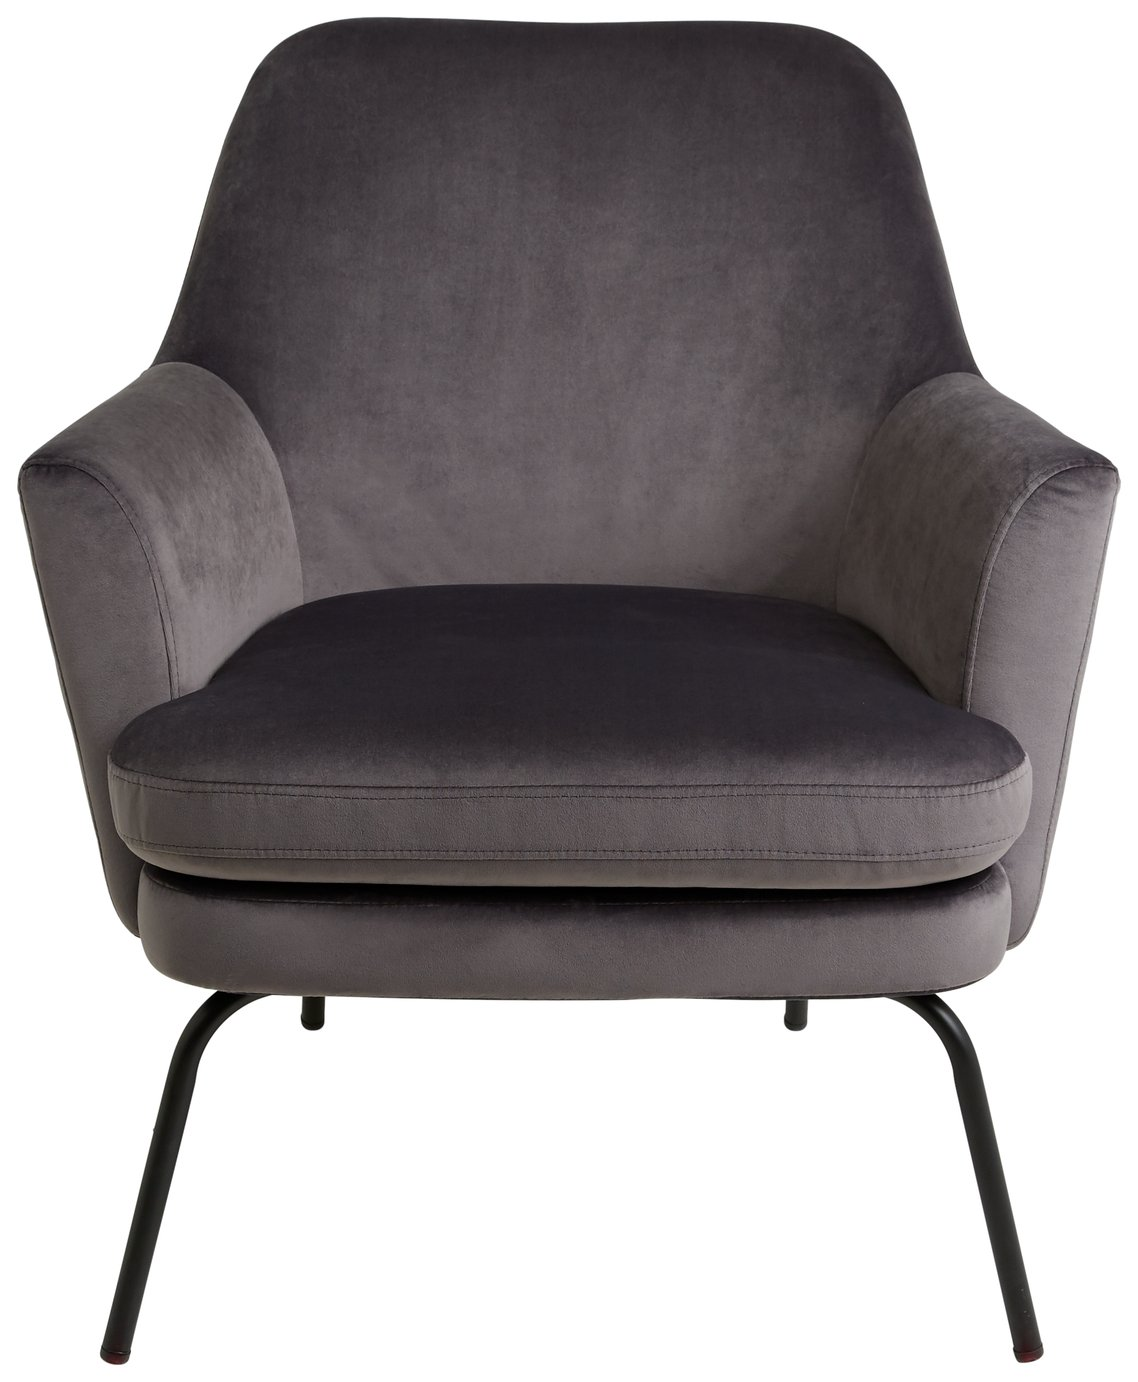 Habitat Celine Velvet Accent Chair - Grey  sc 1 st  Argos & Buy Habitat Celine Velvet Accent Chair - Grey   Armchairs and chairs ...